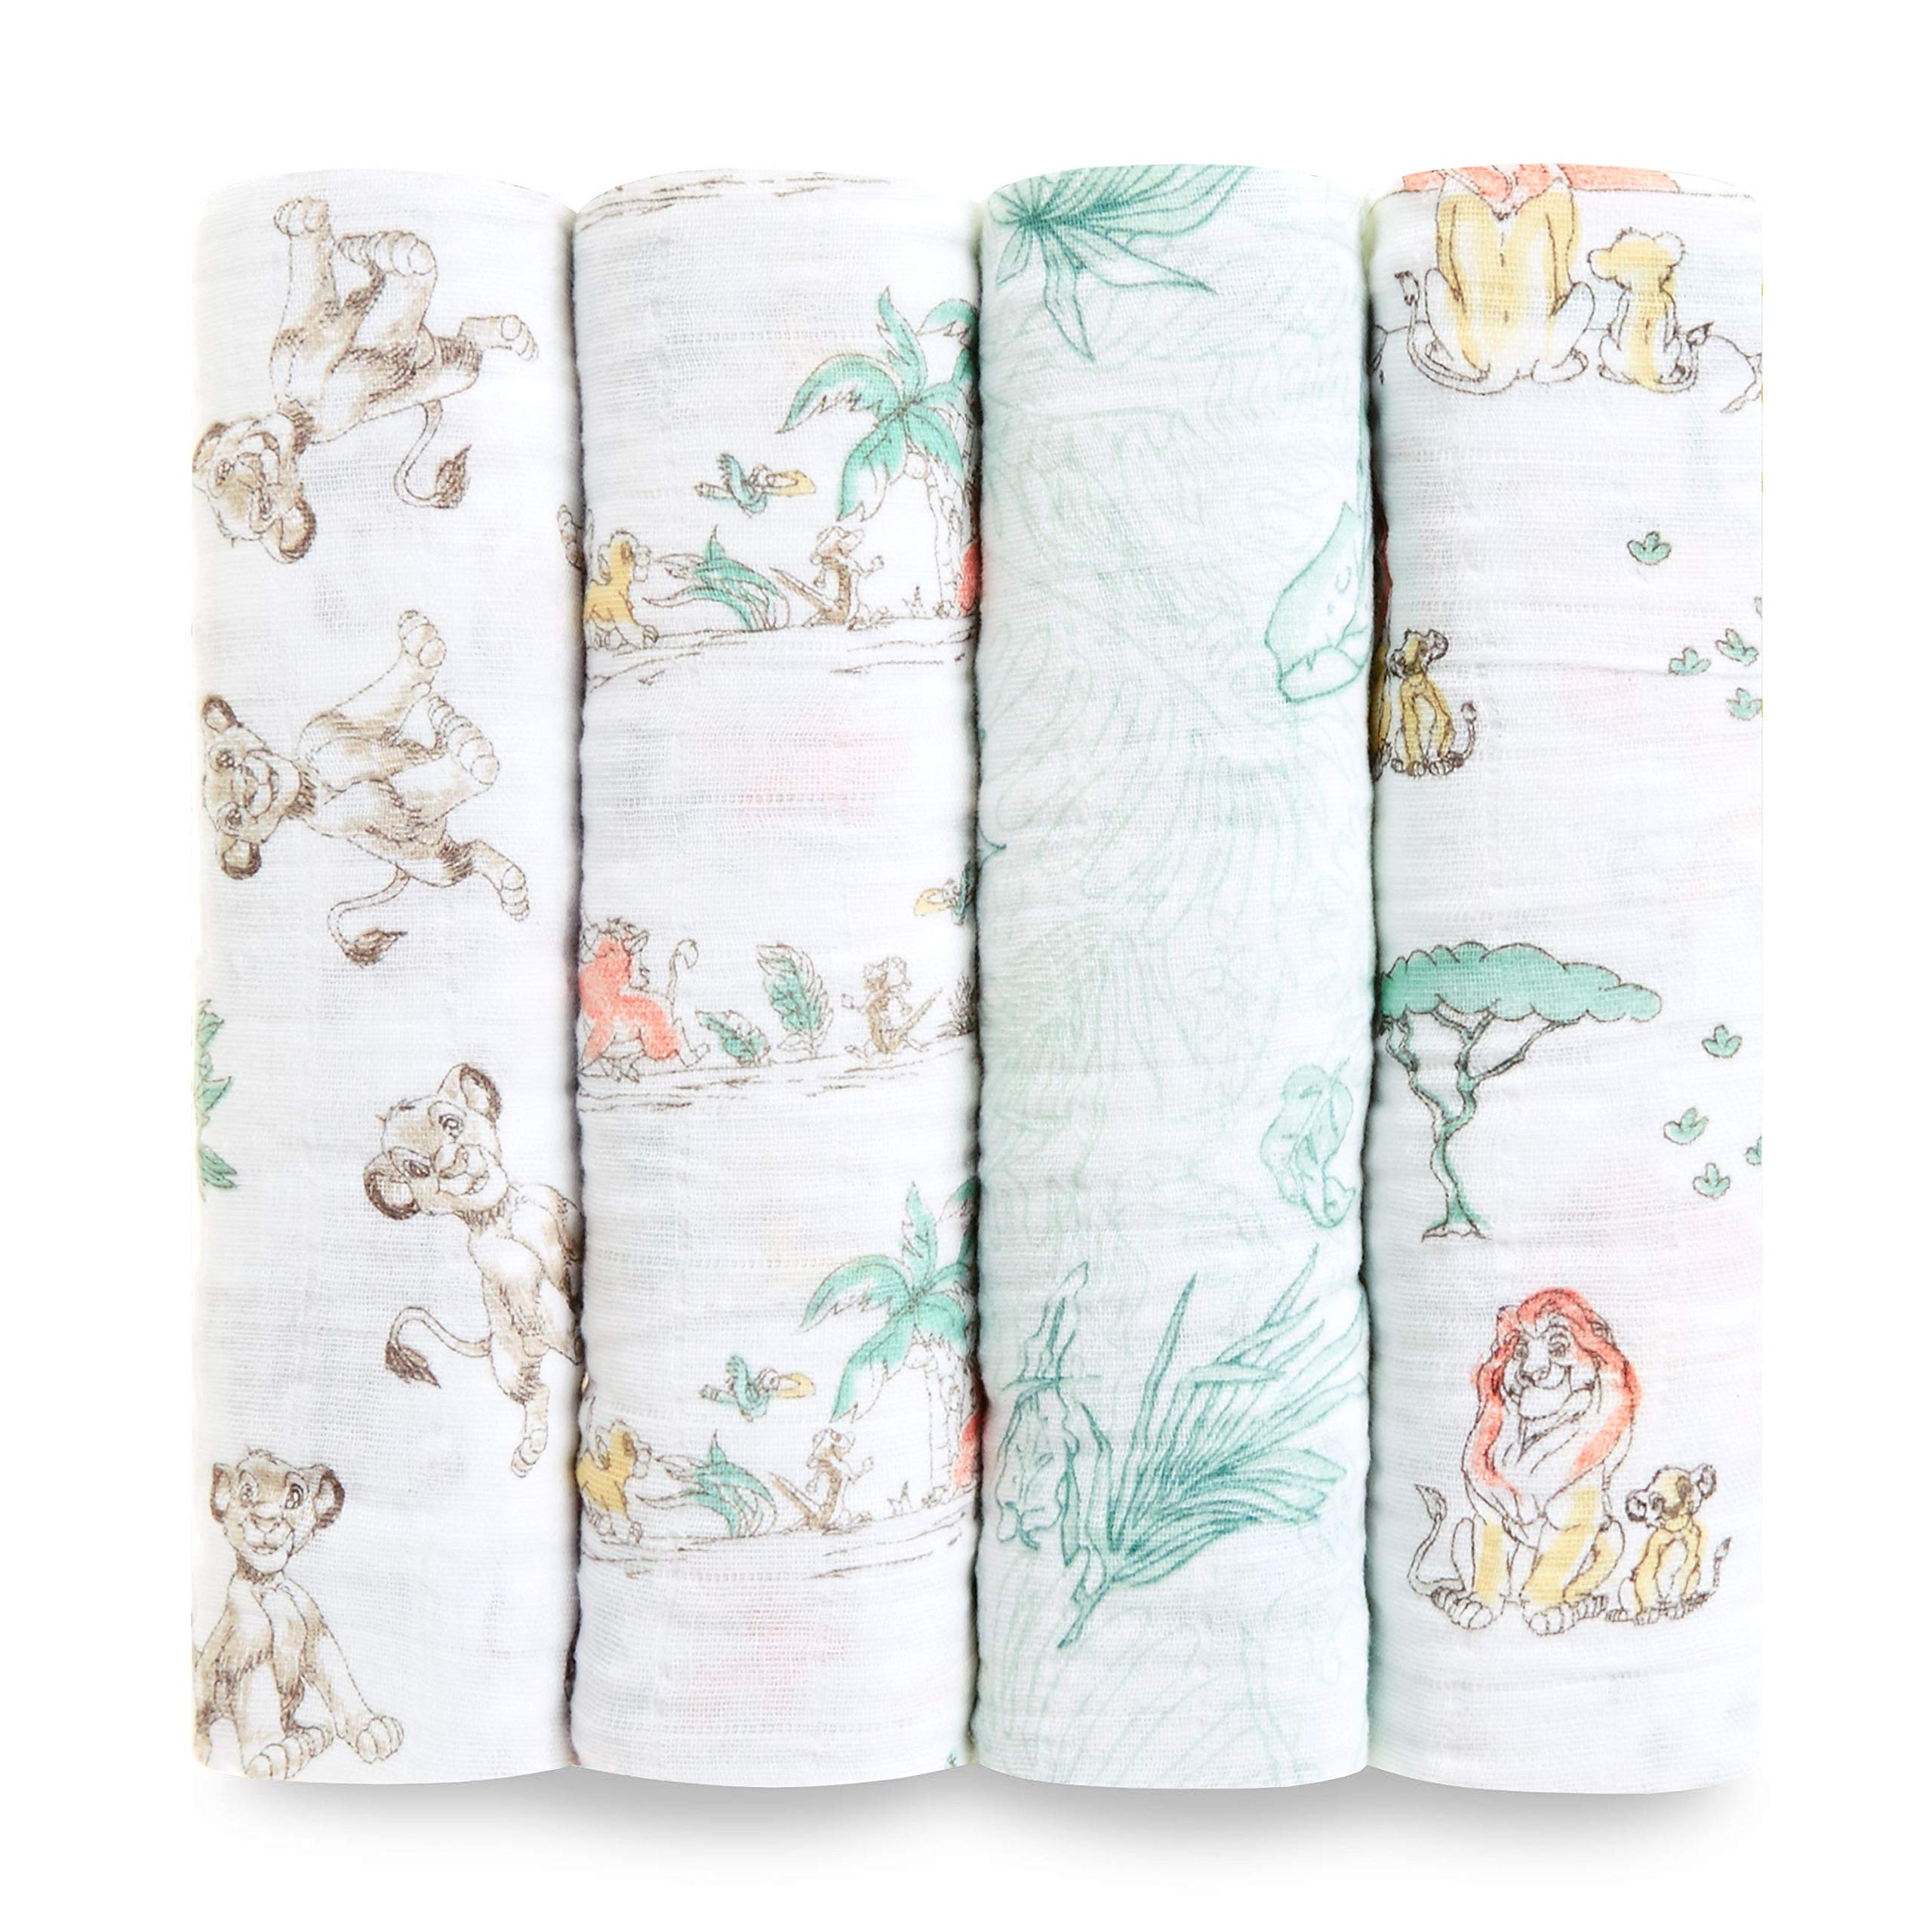 aden + anais Disney, Swaddle Blanket | Boutique Muslin Blankets for Girls & Boys | Baby Receiving Swaddles | Ideal Newborn & Infant Swaddling Set | Perfect Shower Gifts, 4 Pack, Lion King by aden + anais